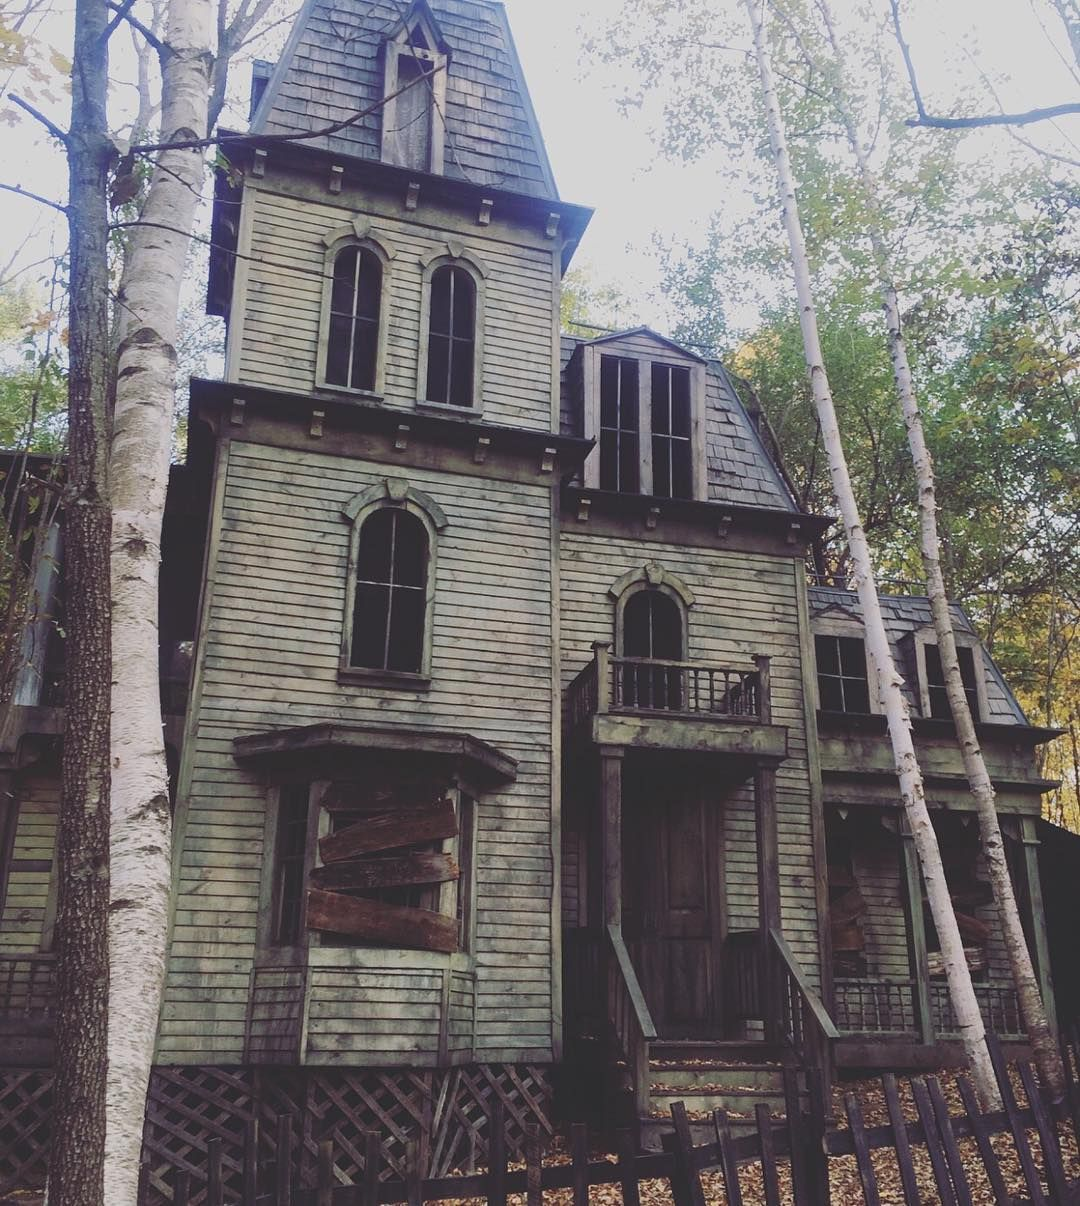 I Don't Know About You, But I Would Explore This House In